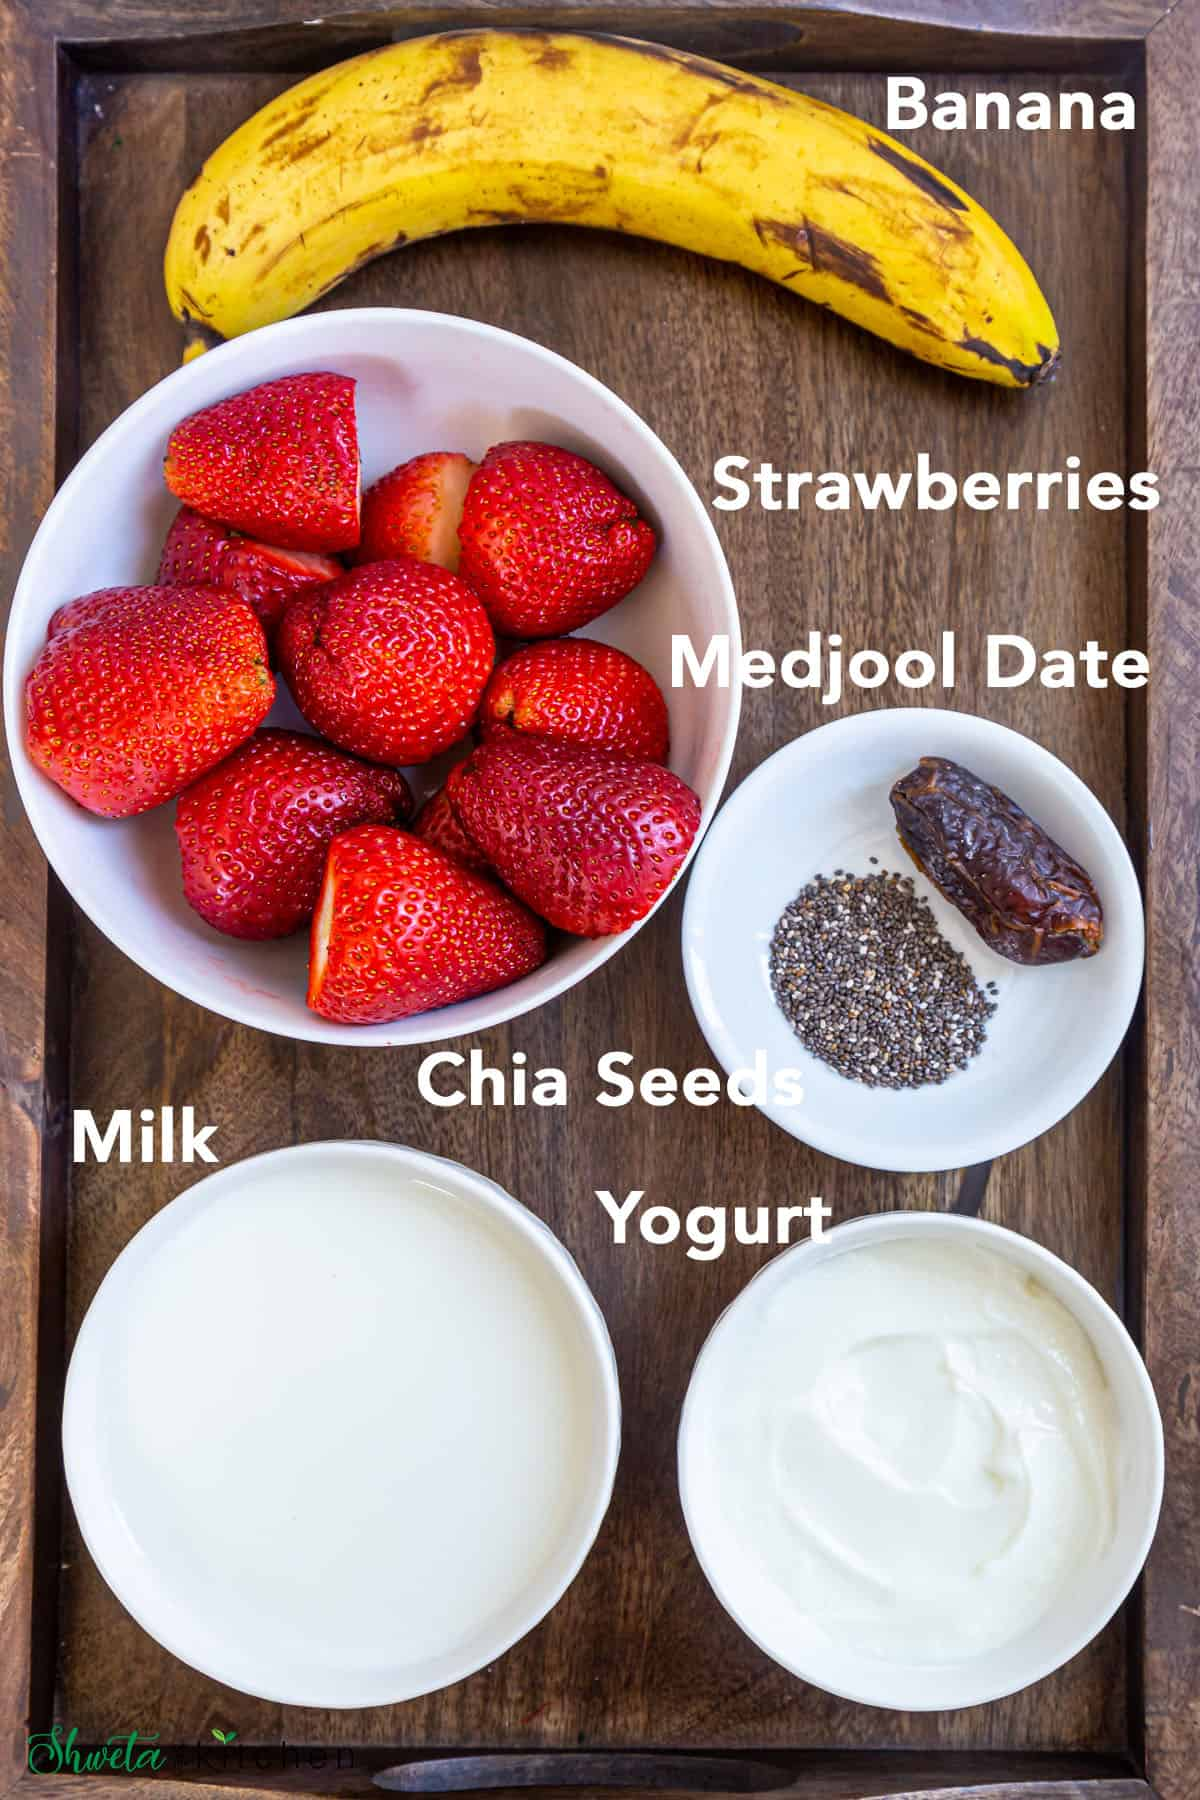 Strawberry banana smoothie ingredients in white bowls on a wooden tray